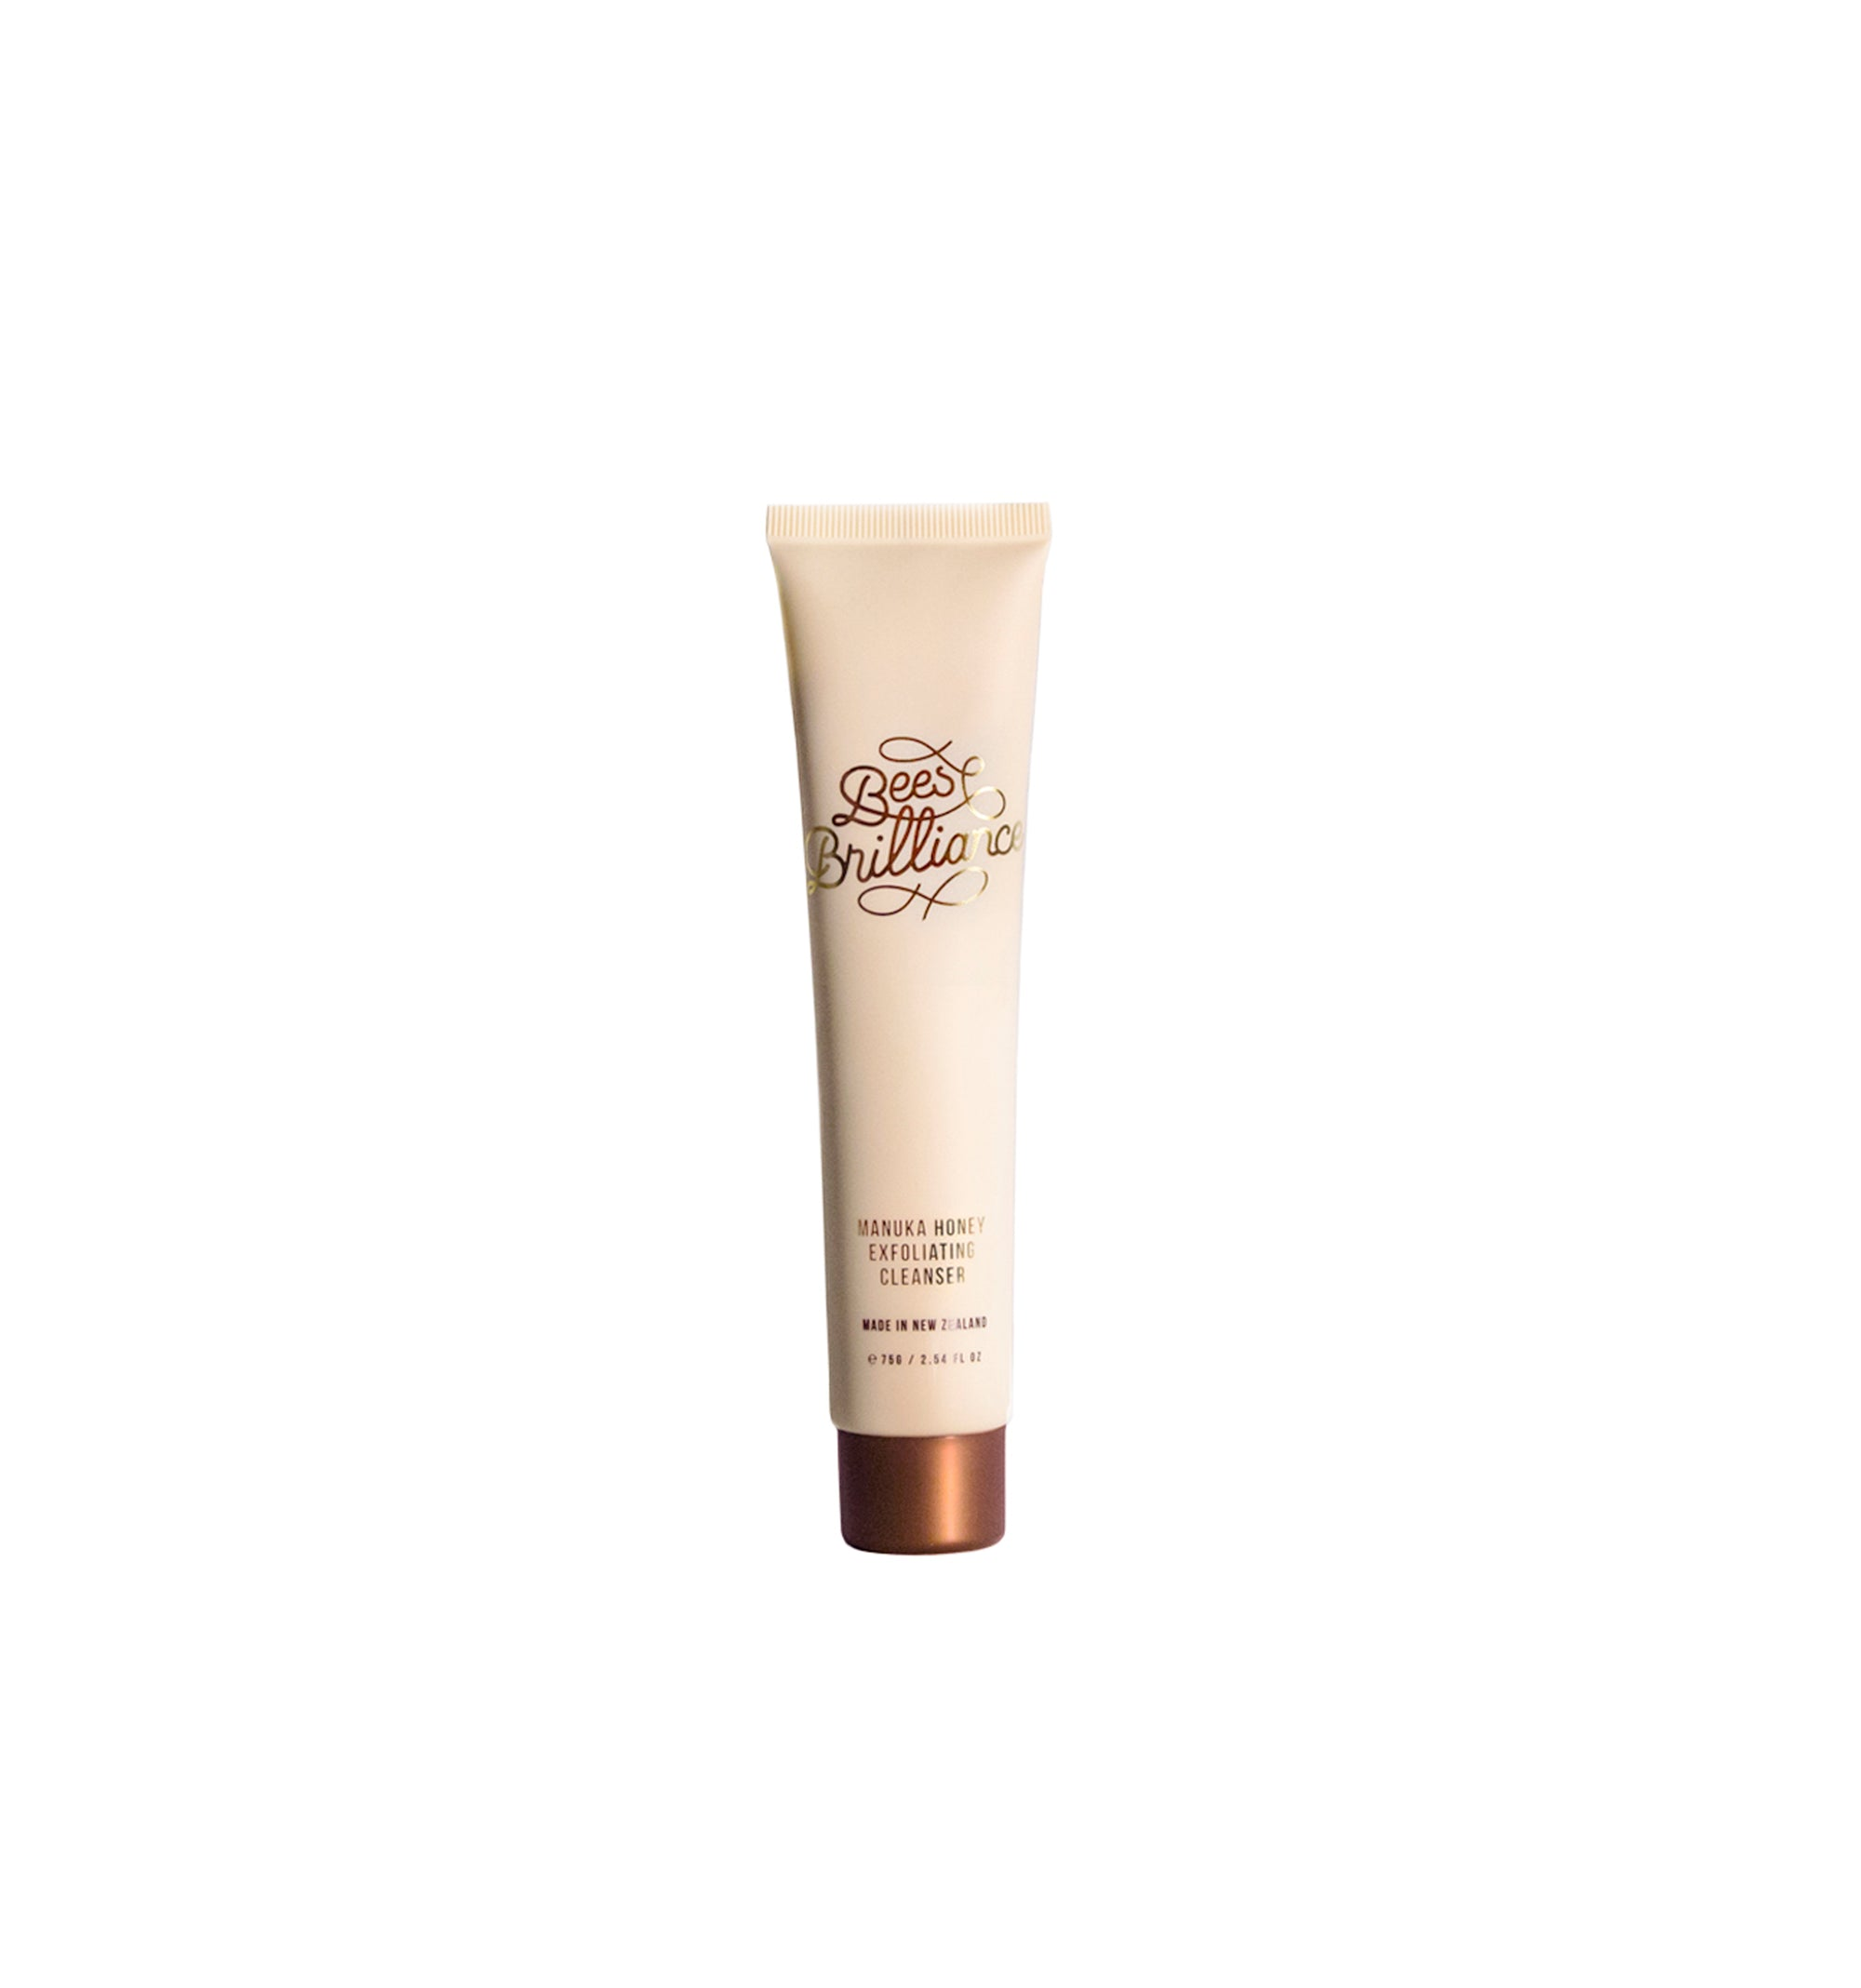 Manuka Honey Exfoliating Cleanser